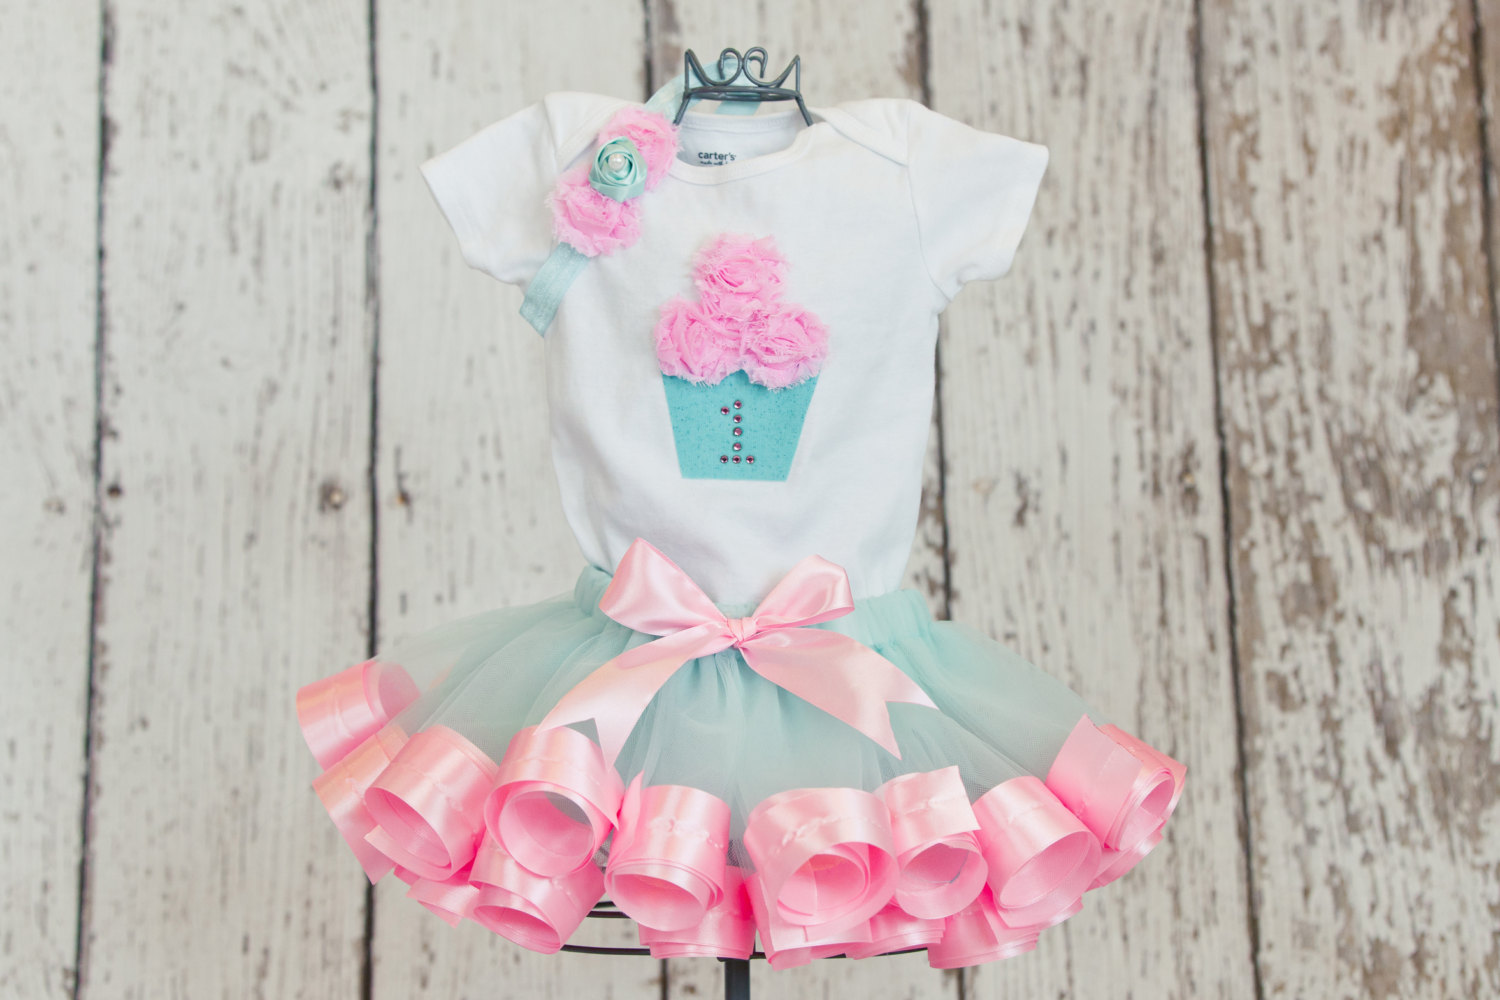 Online shopping for popular & hot Teenage Birthday Dresses from Mother & Kids, Dresses, Dresses, Women's Clothing & Accessories and more related Teenage Birthday Dresses like teenage baptism dresses, dresses birthday teenagers, teenagers birthday dresses, teenagers birthday dress. Discover over of the best Selection Teenage Birthday Dresses on smileqbl.gq